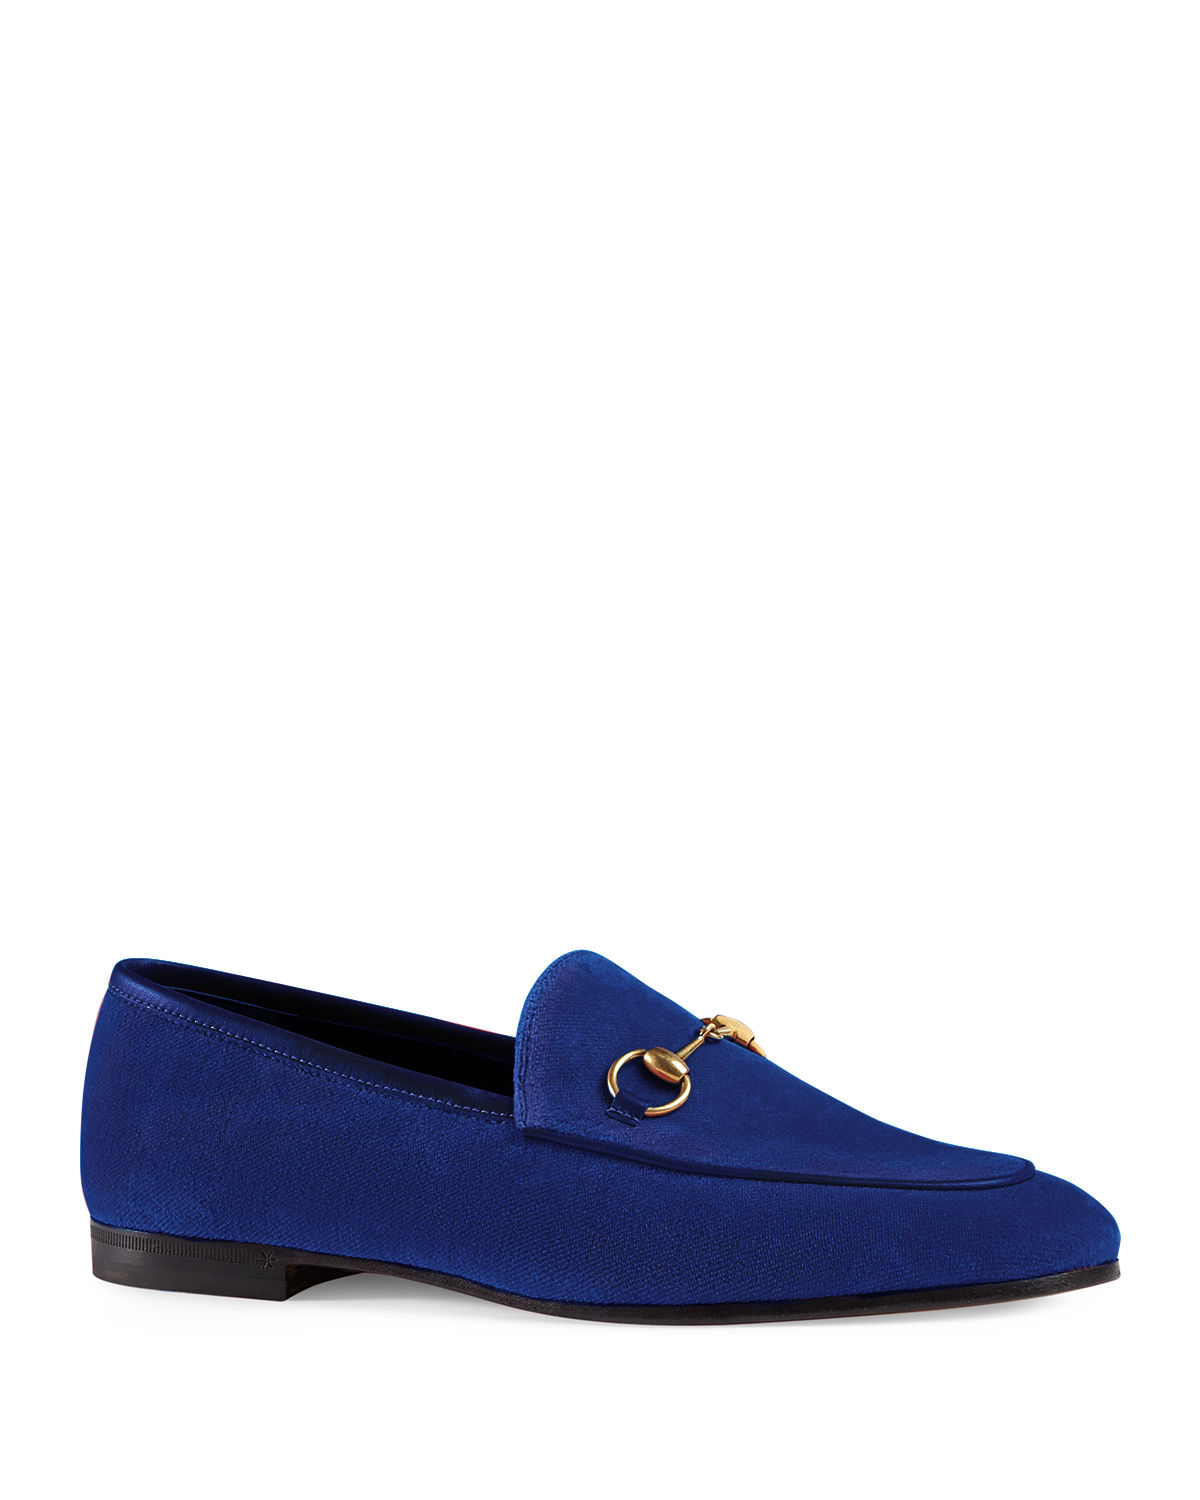 51368b2bc9 10mm New Jordaan Velvet Loafer